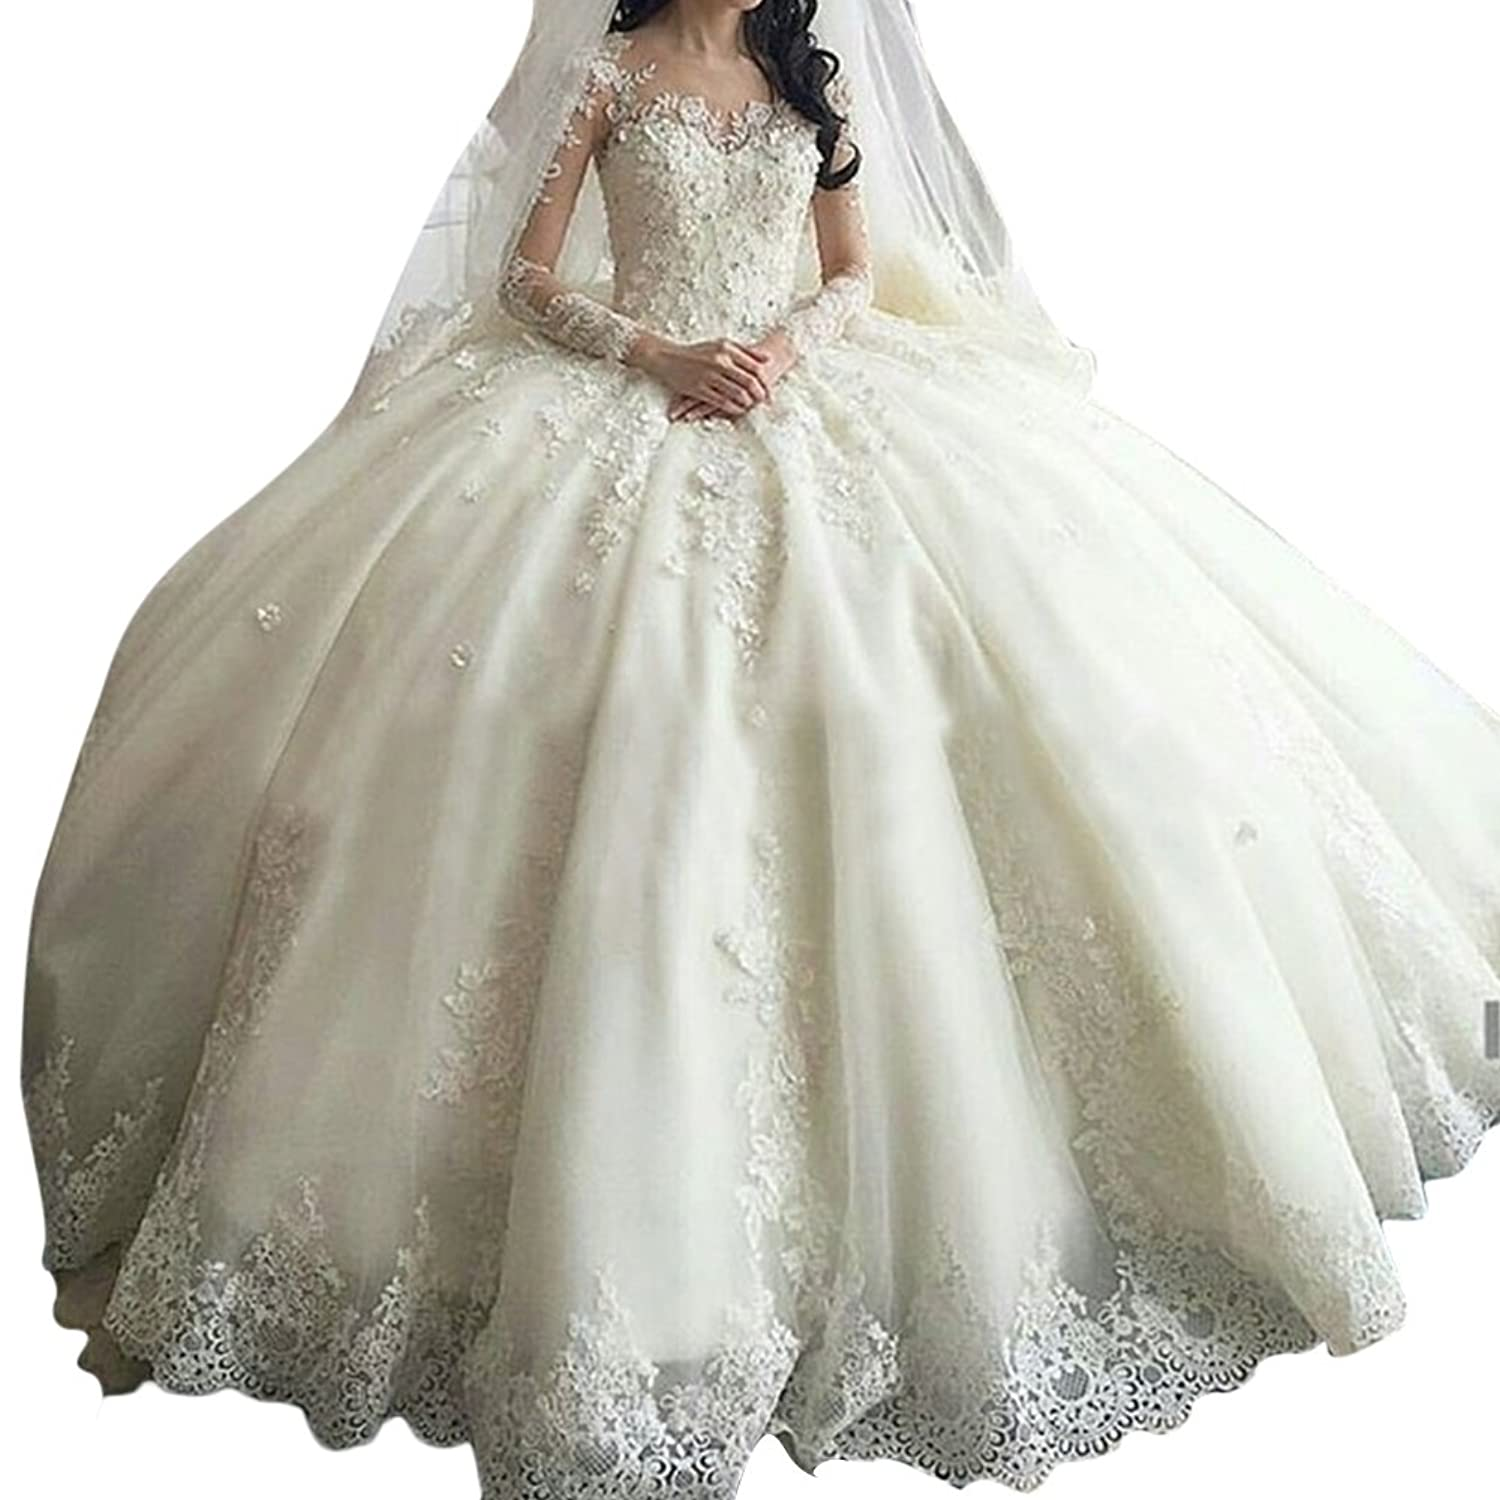 Kevins Bridal Luxury Lace Wedding Dresses Long Sleeves Ball Gown ...